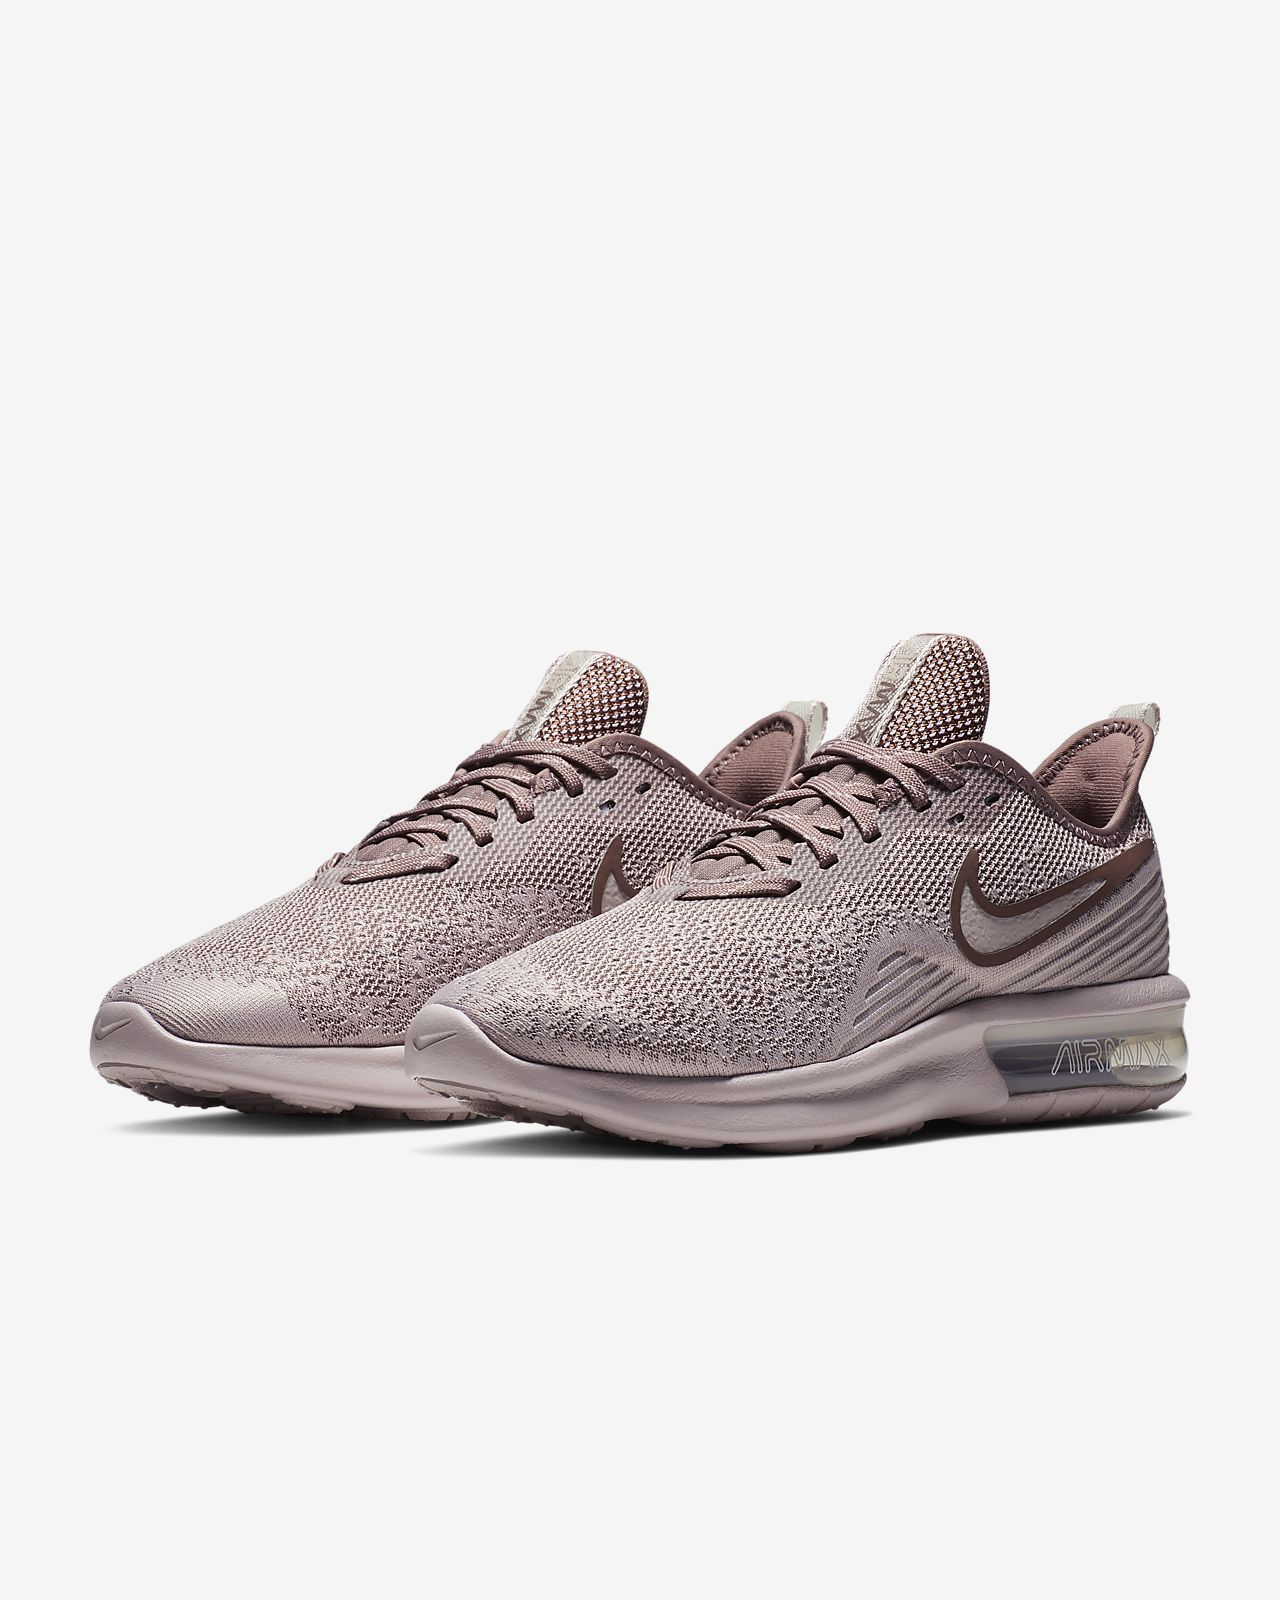 new product c3e09 dc2ef ... Nike Air Max Sequent 4 Women s Shoe